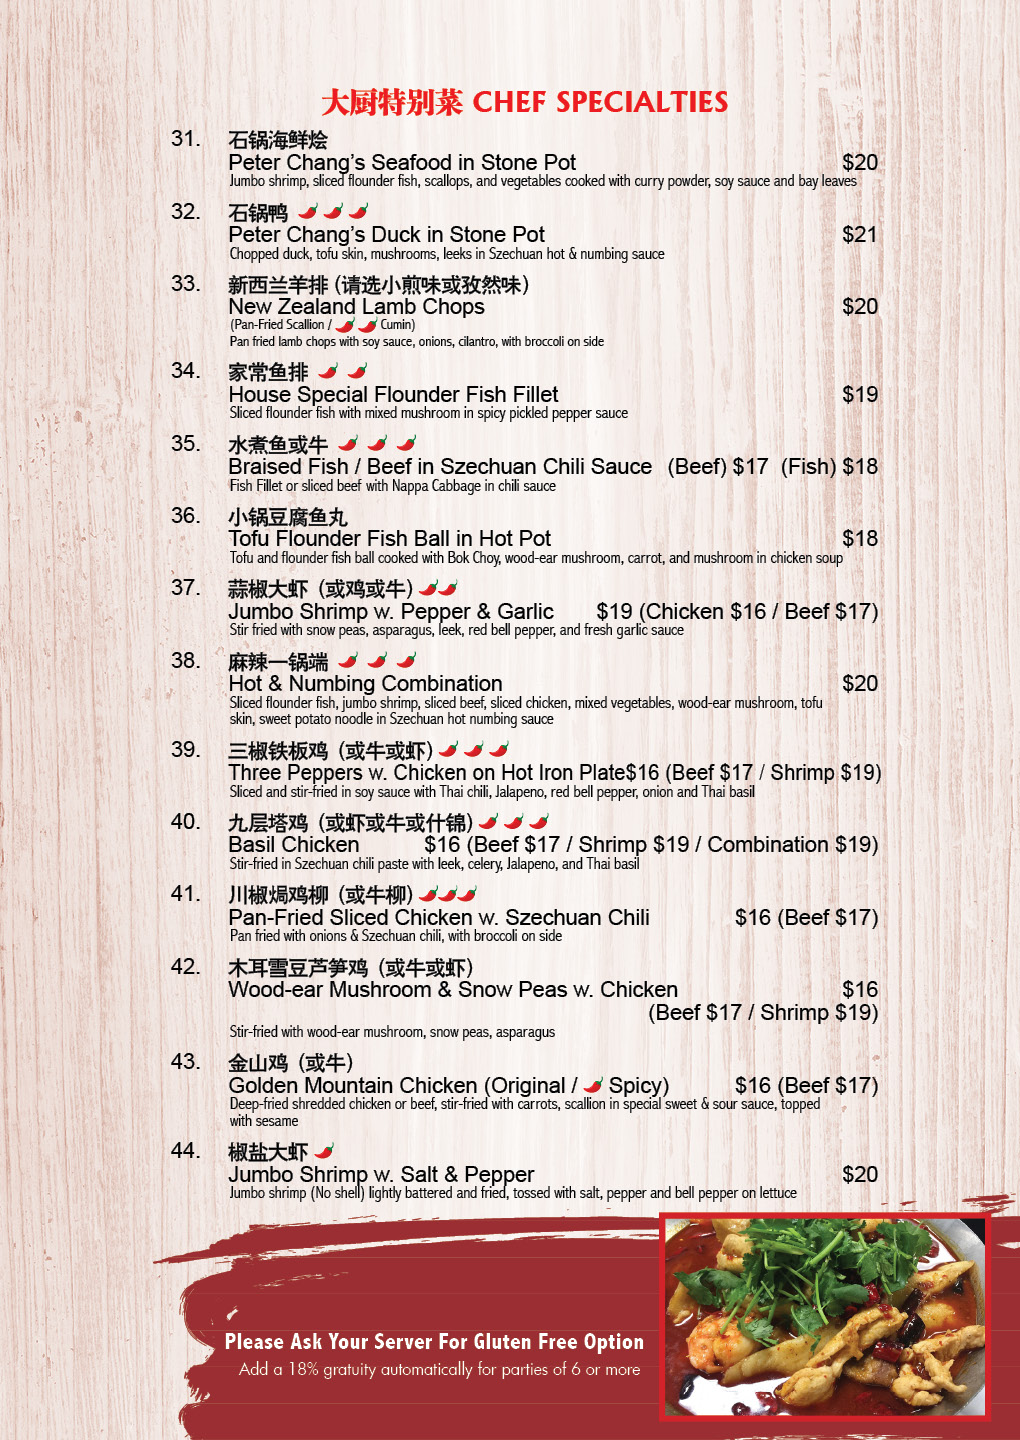 photograph regarding Pf Changs Printable Menu known as Peter Chang